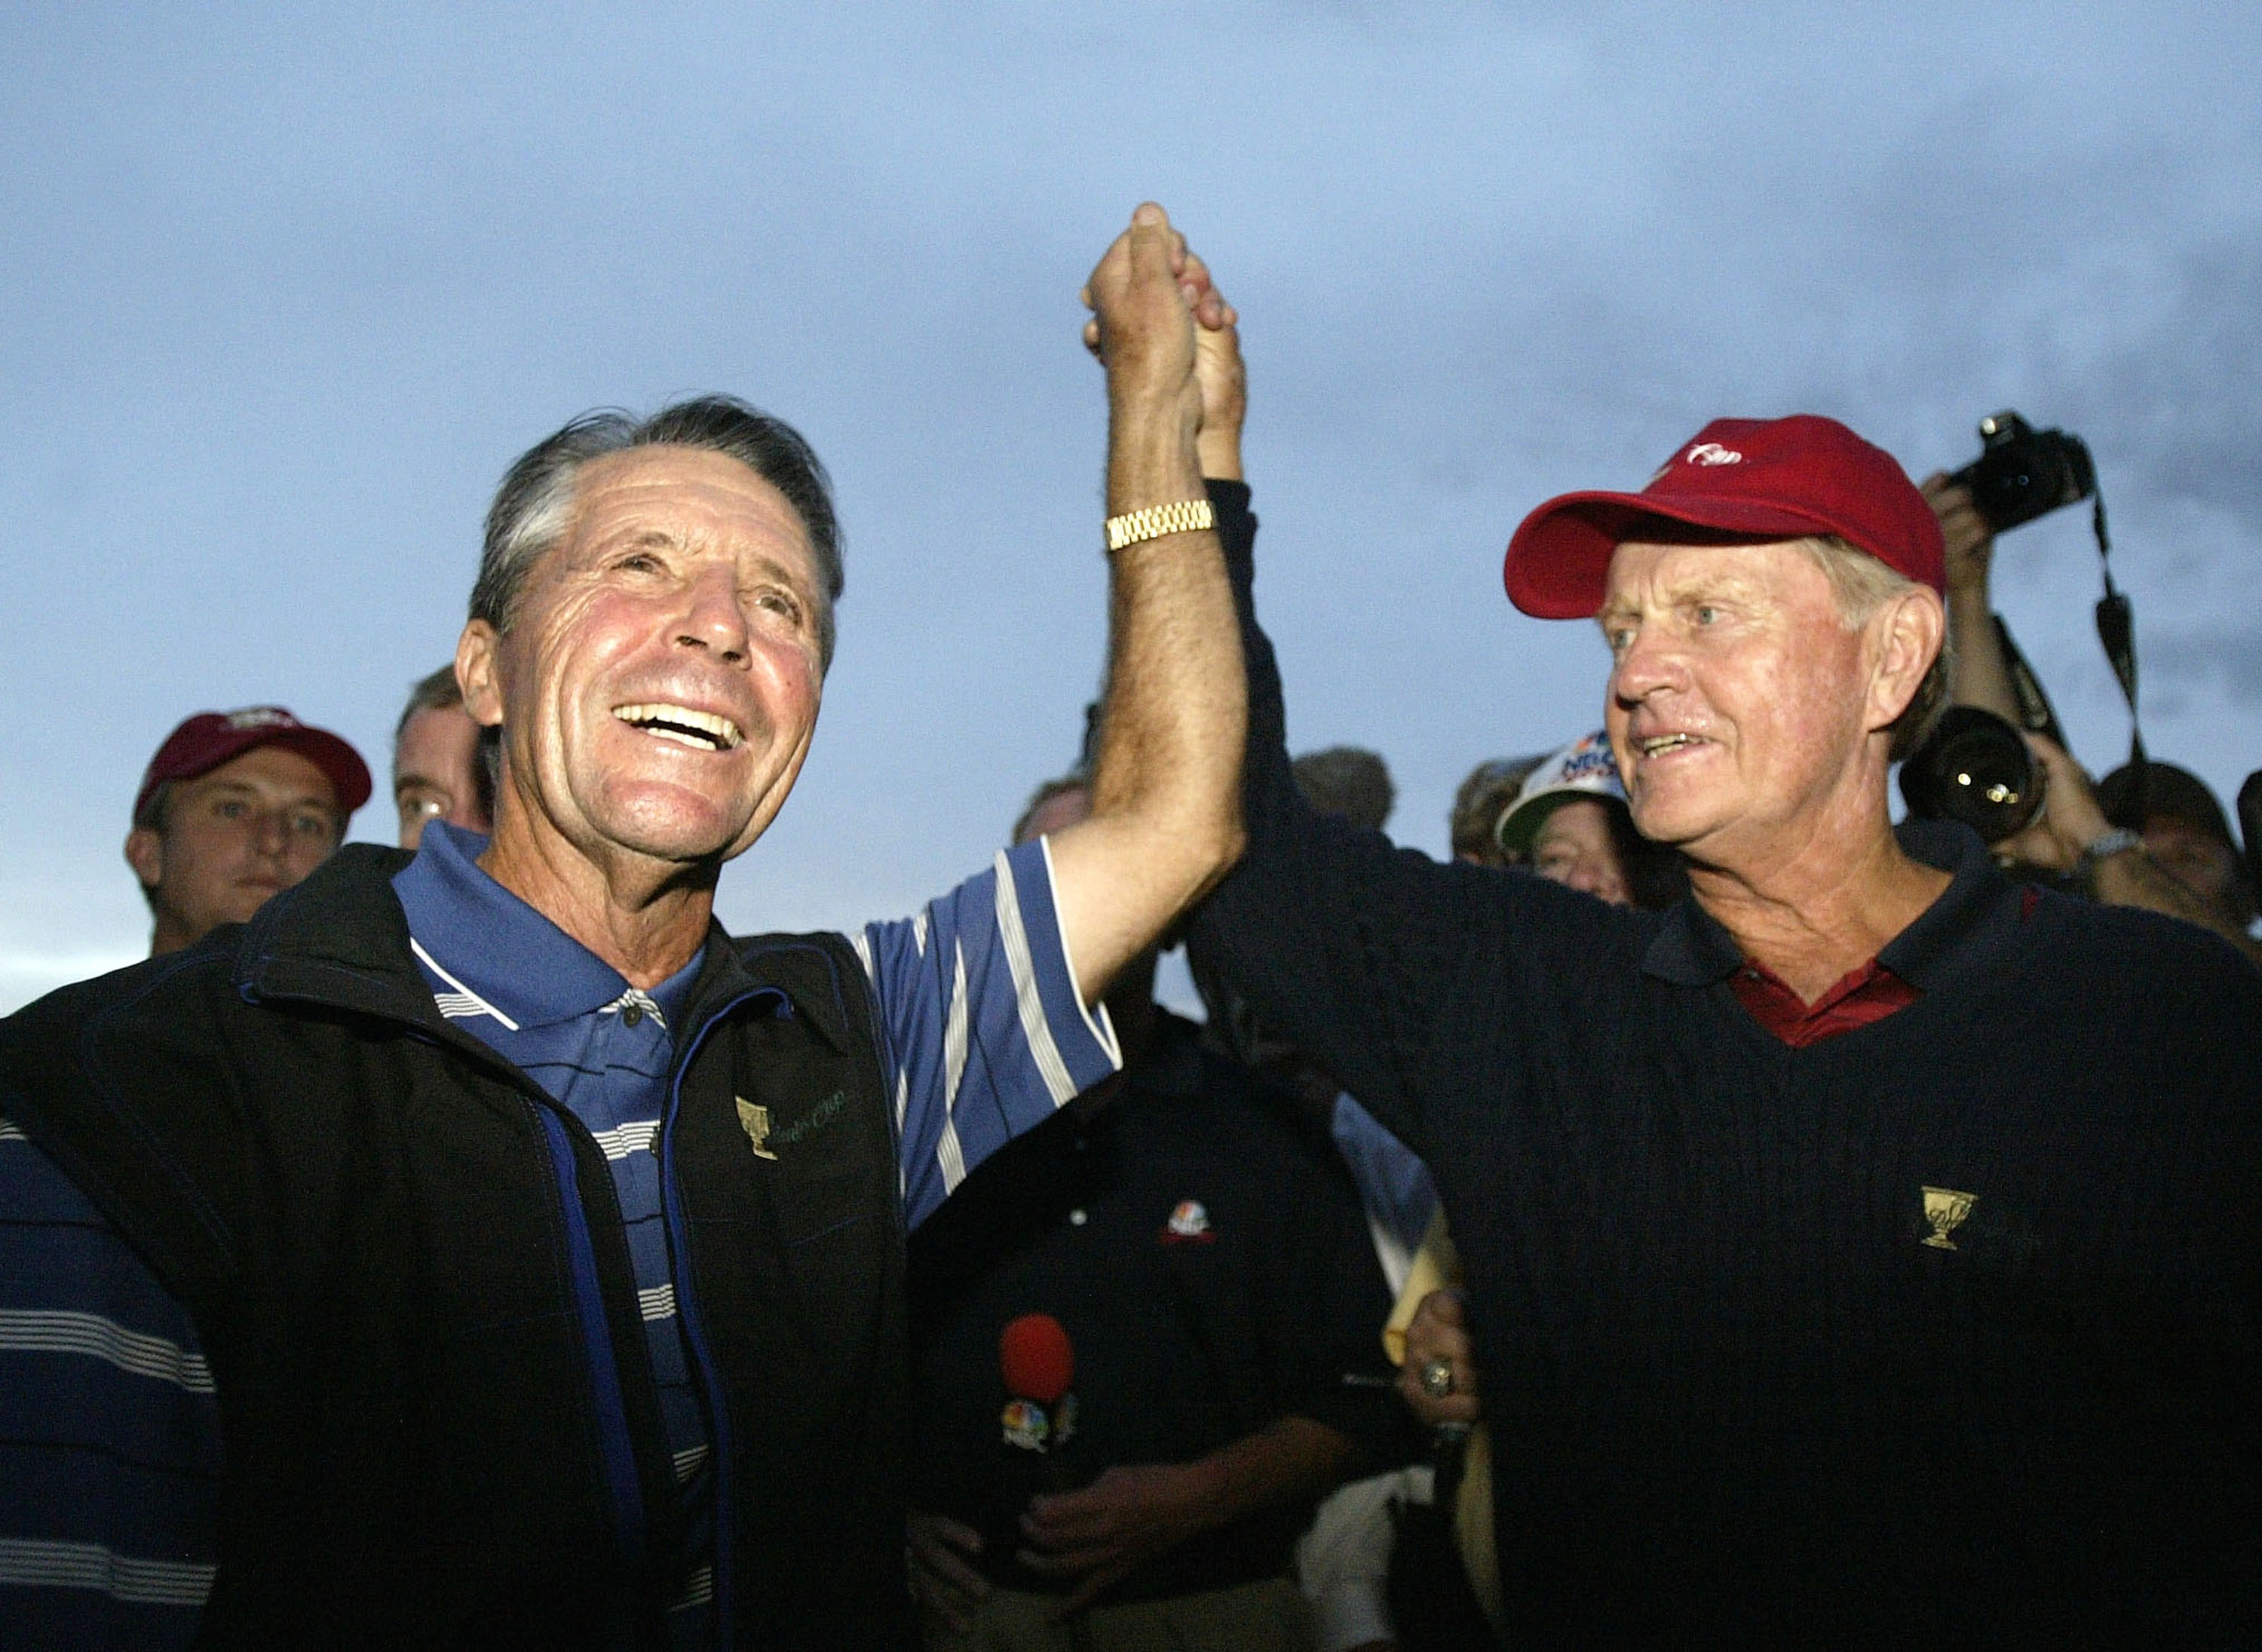 USA Captain Jack Nicklaus and International Team Captain Gary Player raise each others hands in ending the match in a 17-17 draw during the final round of the 2003 President's Cup.